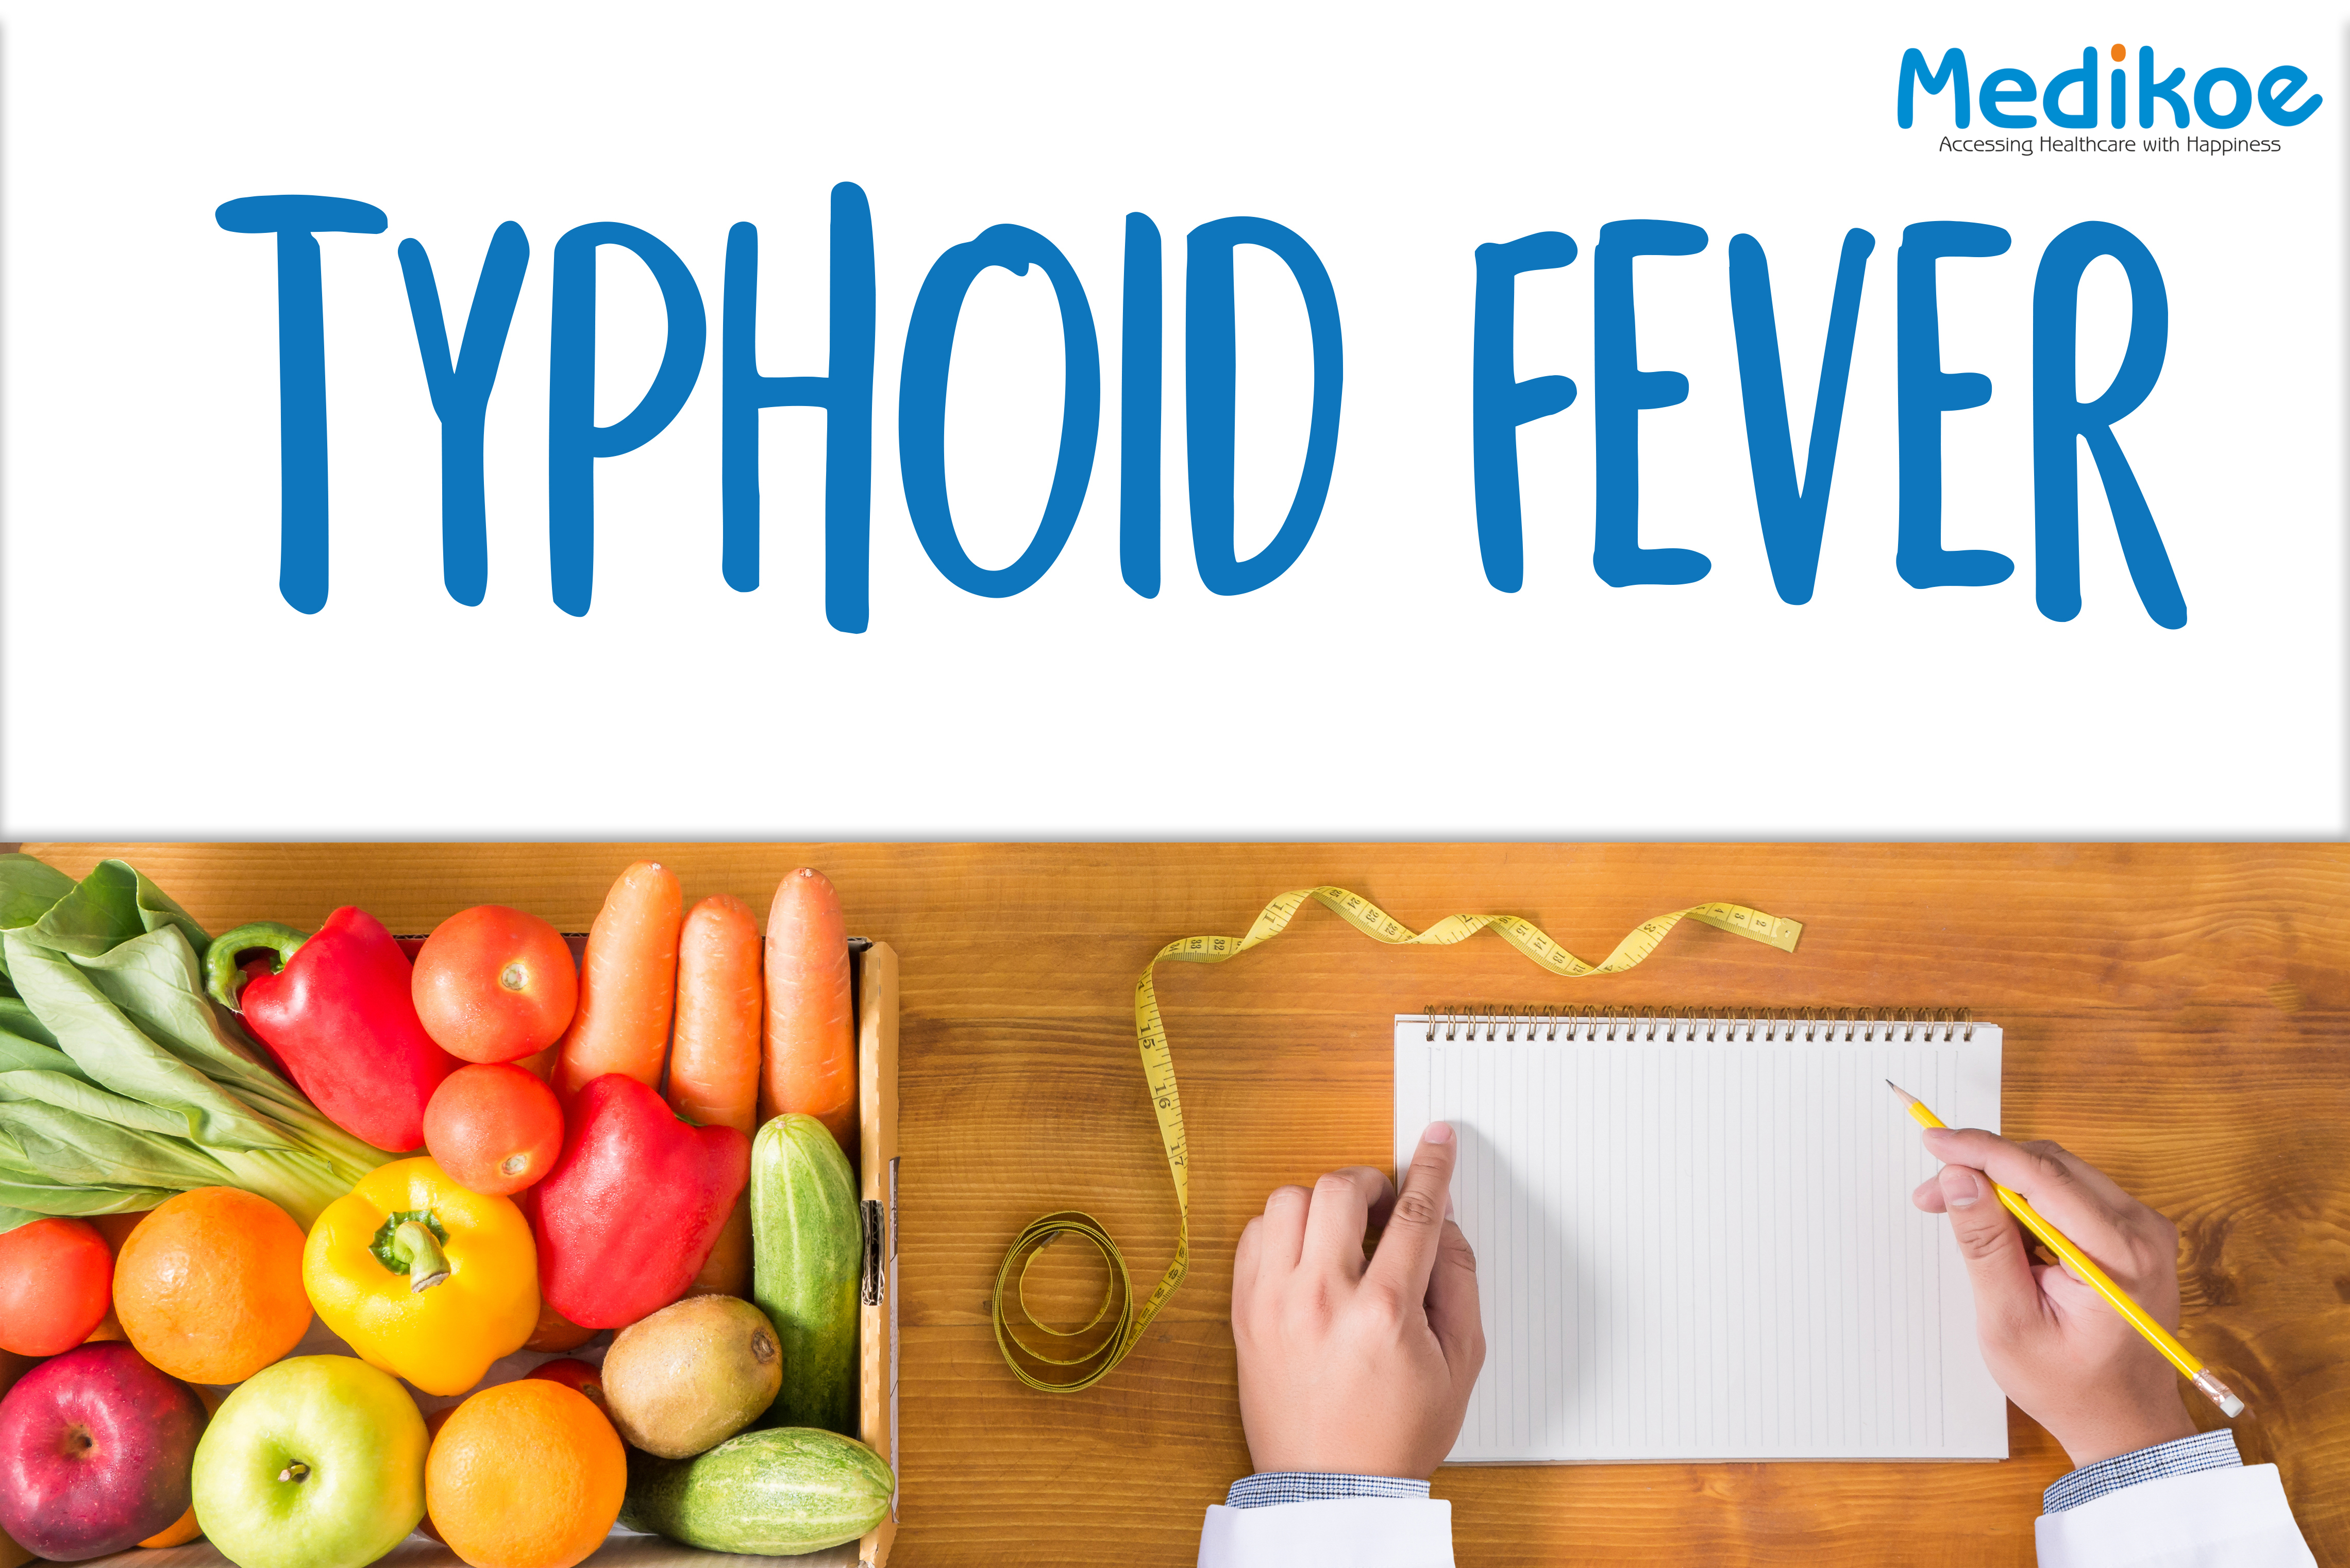 What To Eat If You Are Suffering From Typhoid Fever?